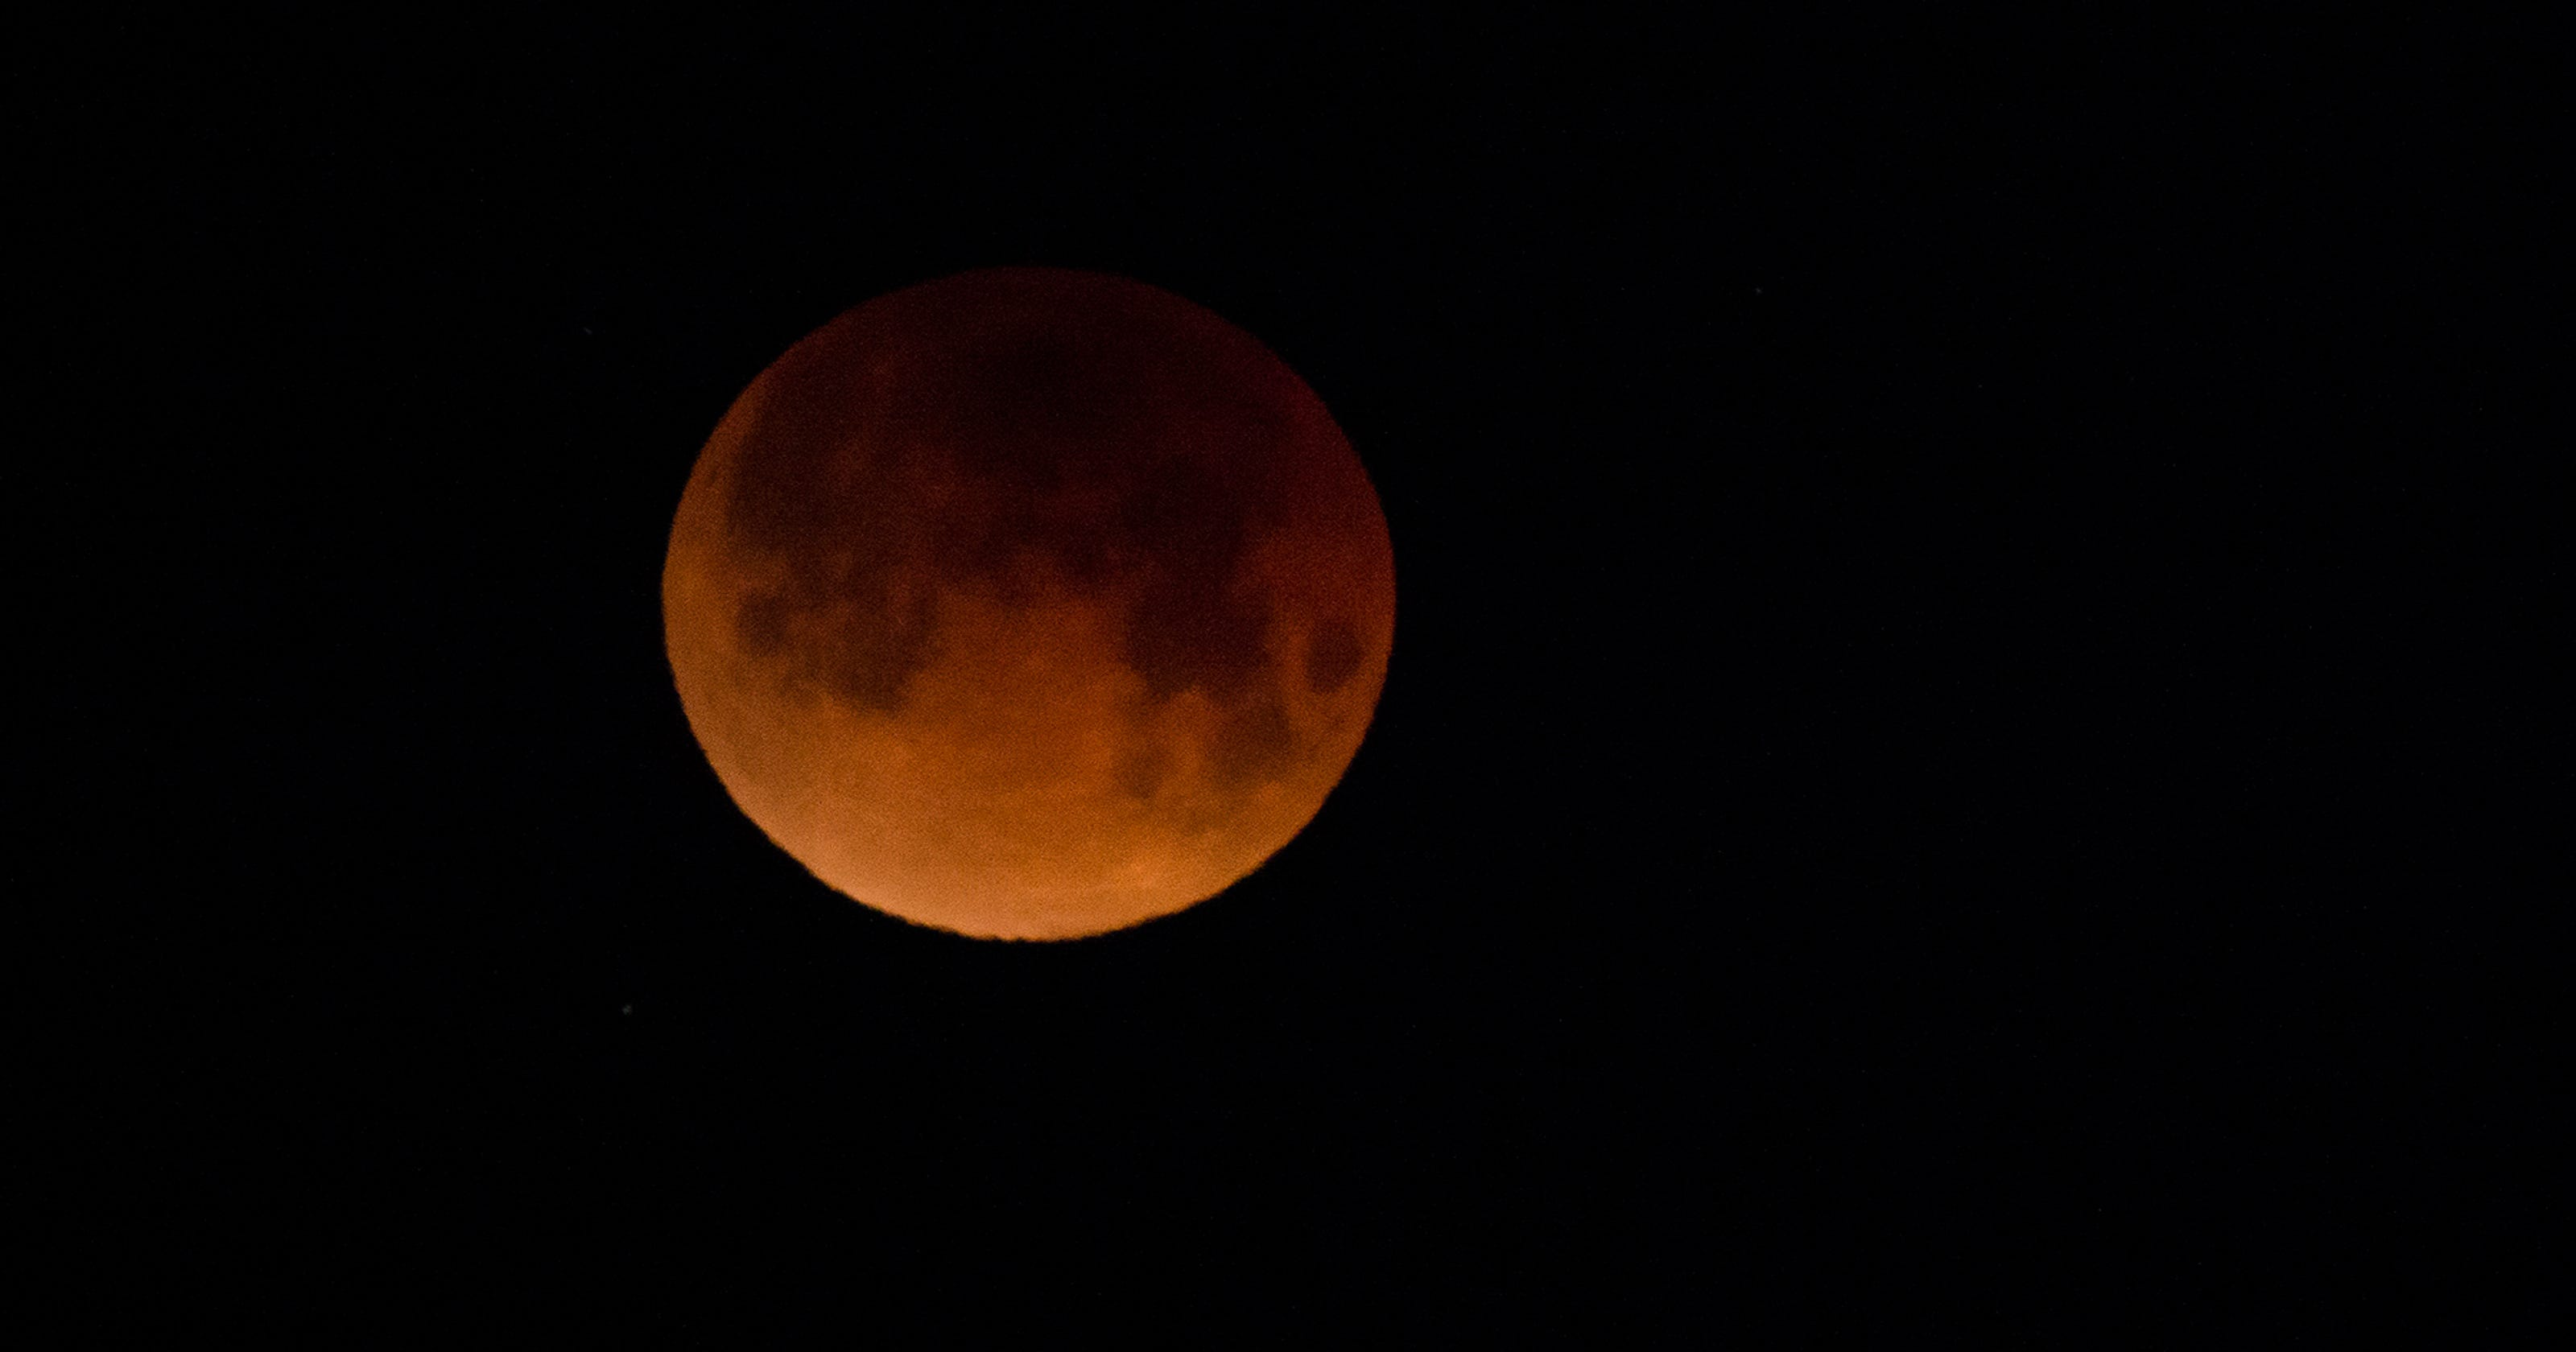 blood moon january 2019 viewing guide - photo #15